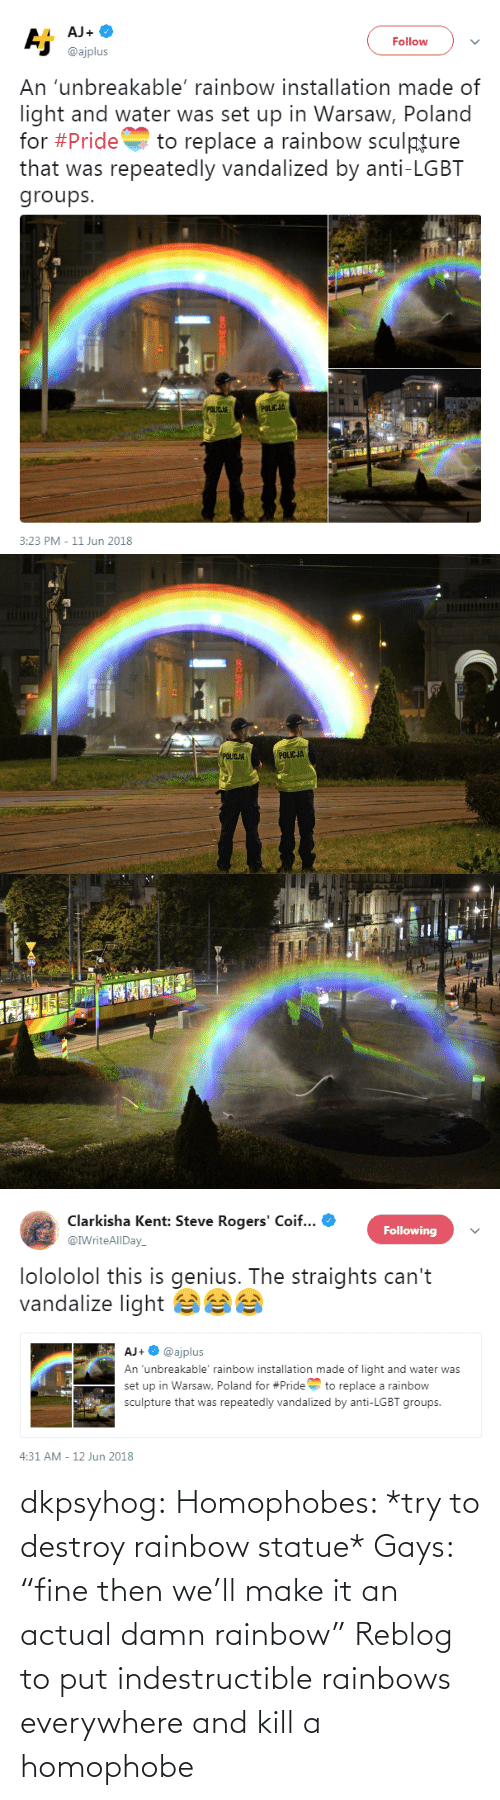 """Try: dkpsyhog: Homophobes: *try to destroy rainbow statue* Gays: """"fine then we'll make it an actual damn rainbow"""" Reblog to put indestructible rainbows everywhere and kill a homophobe"""